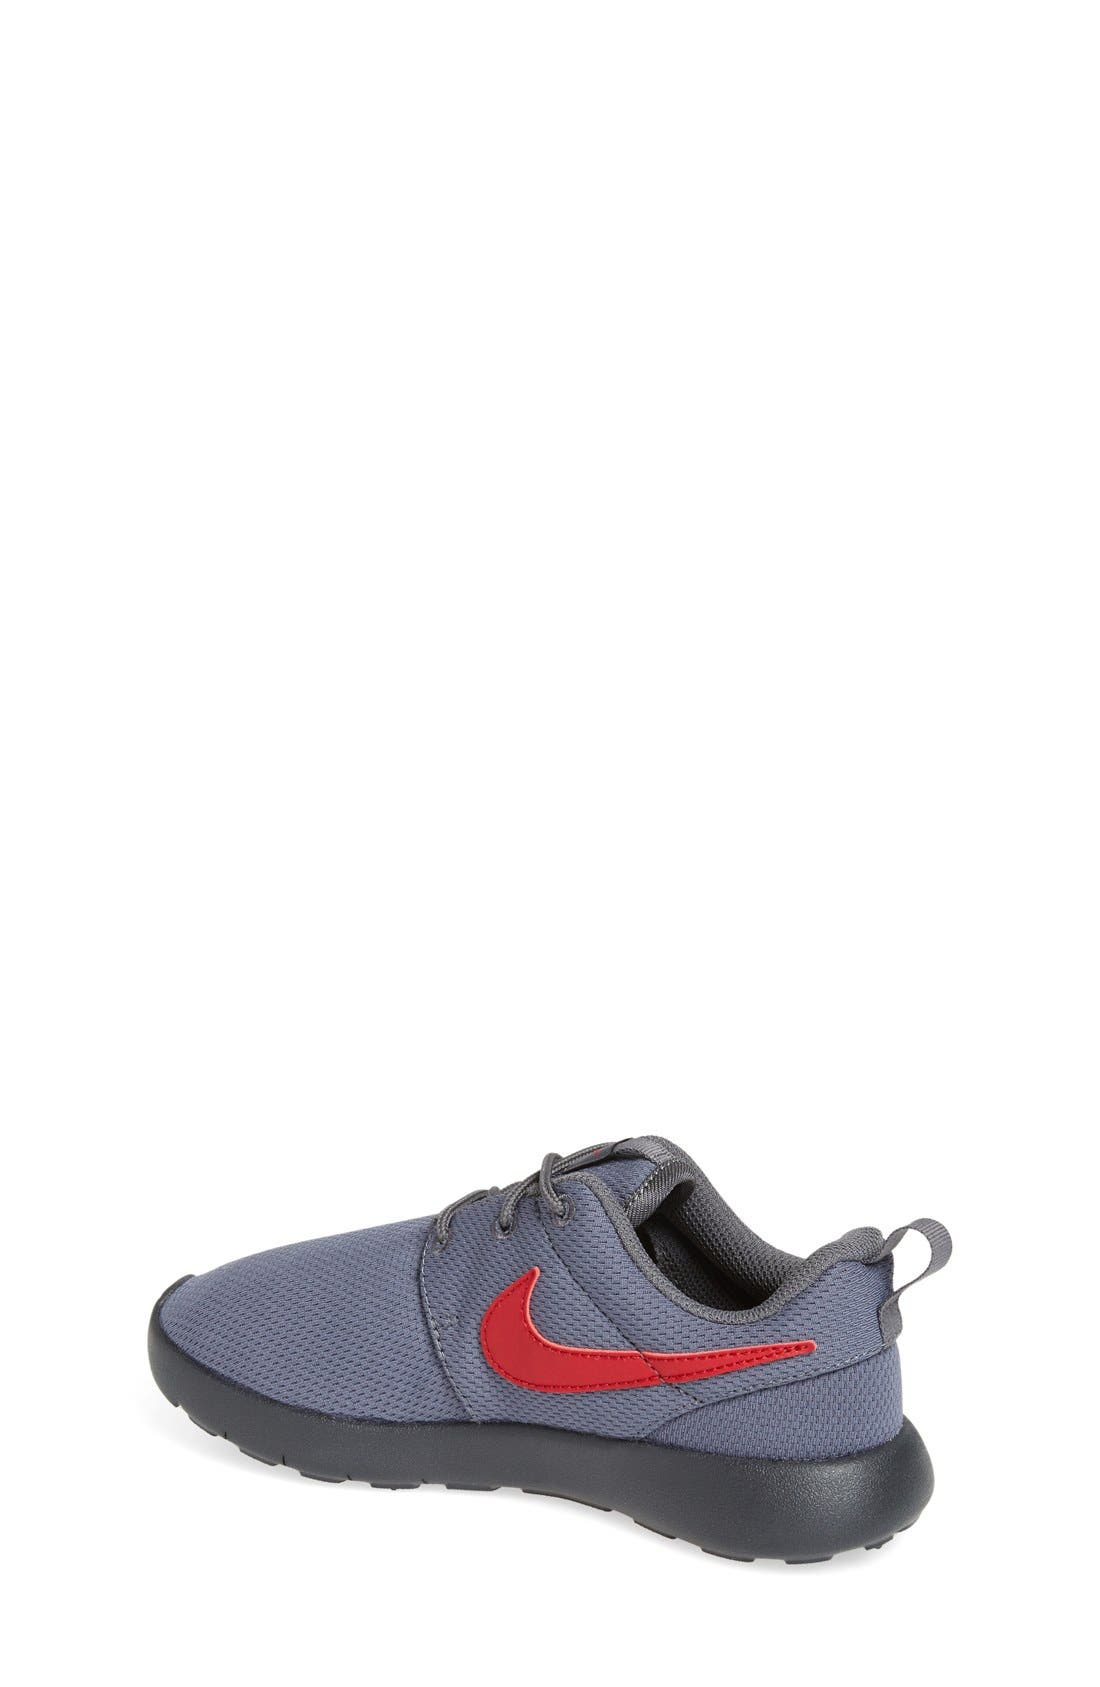 Roshe Run Sneaker,                             Alternate thumbnail 27, color,